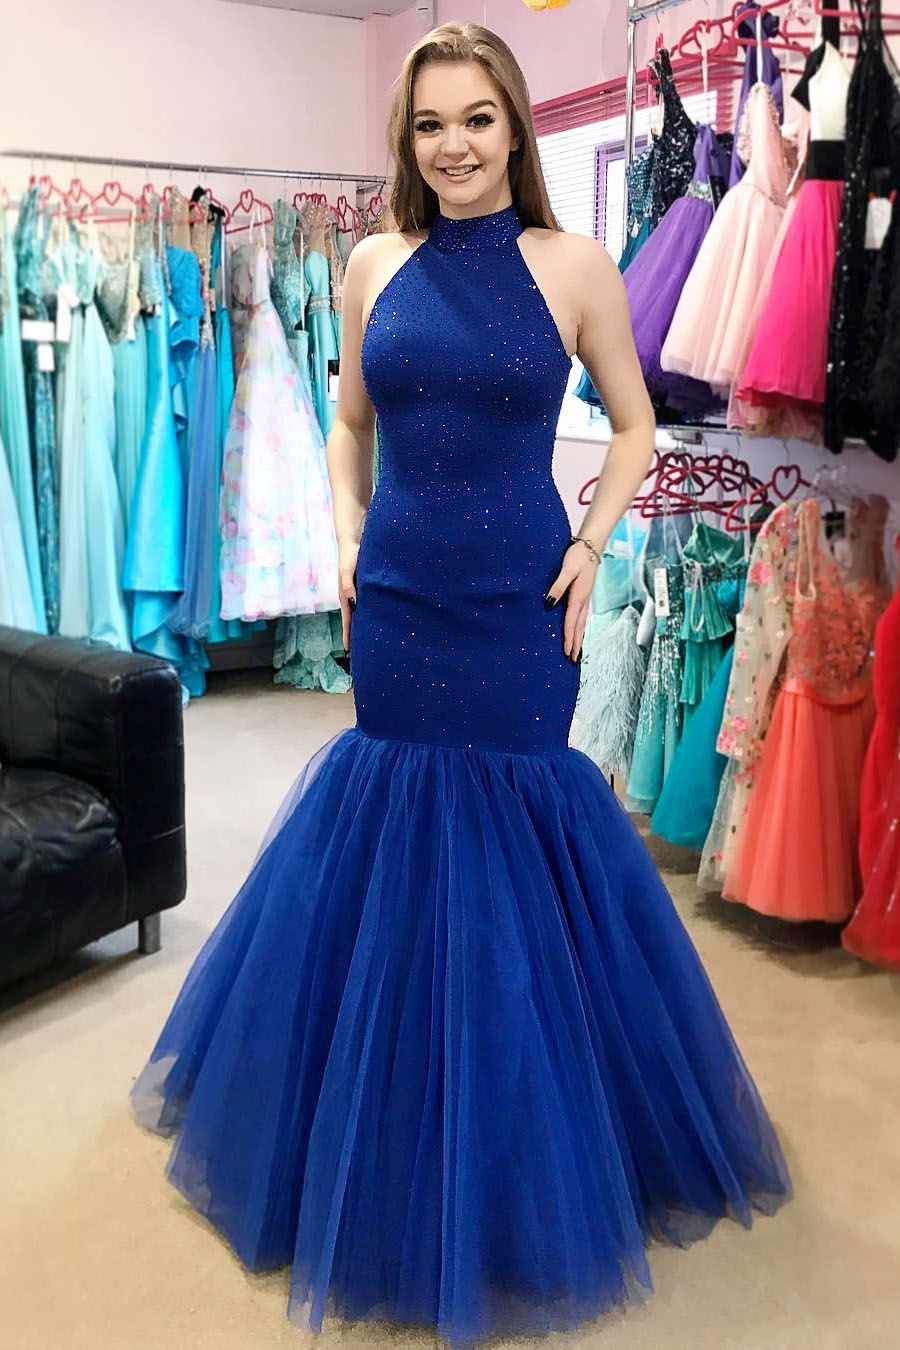 2018 Short Homecoming Dress Party Dress From Modsele In 2018 Fancy